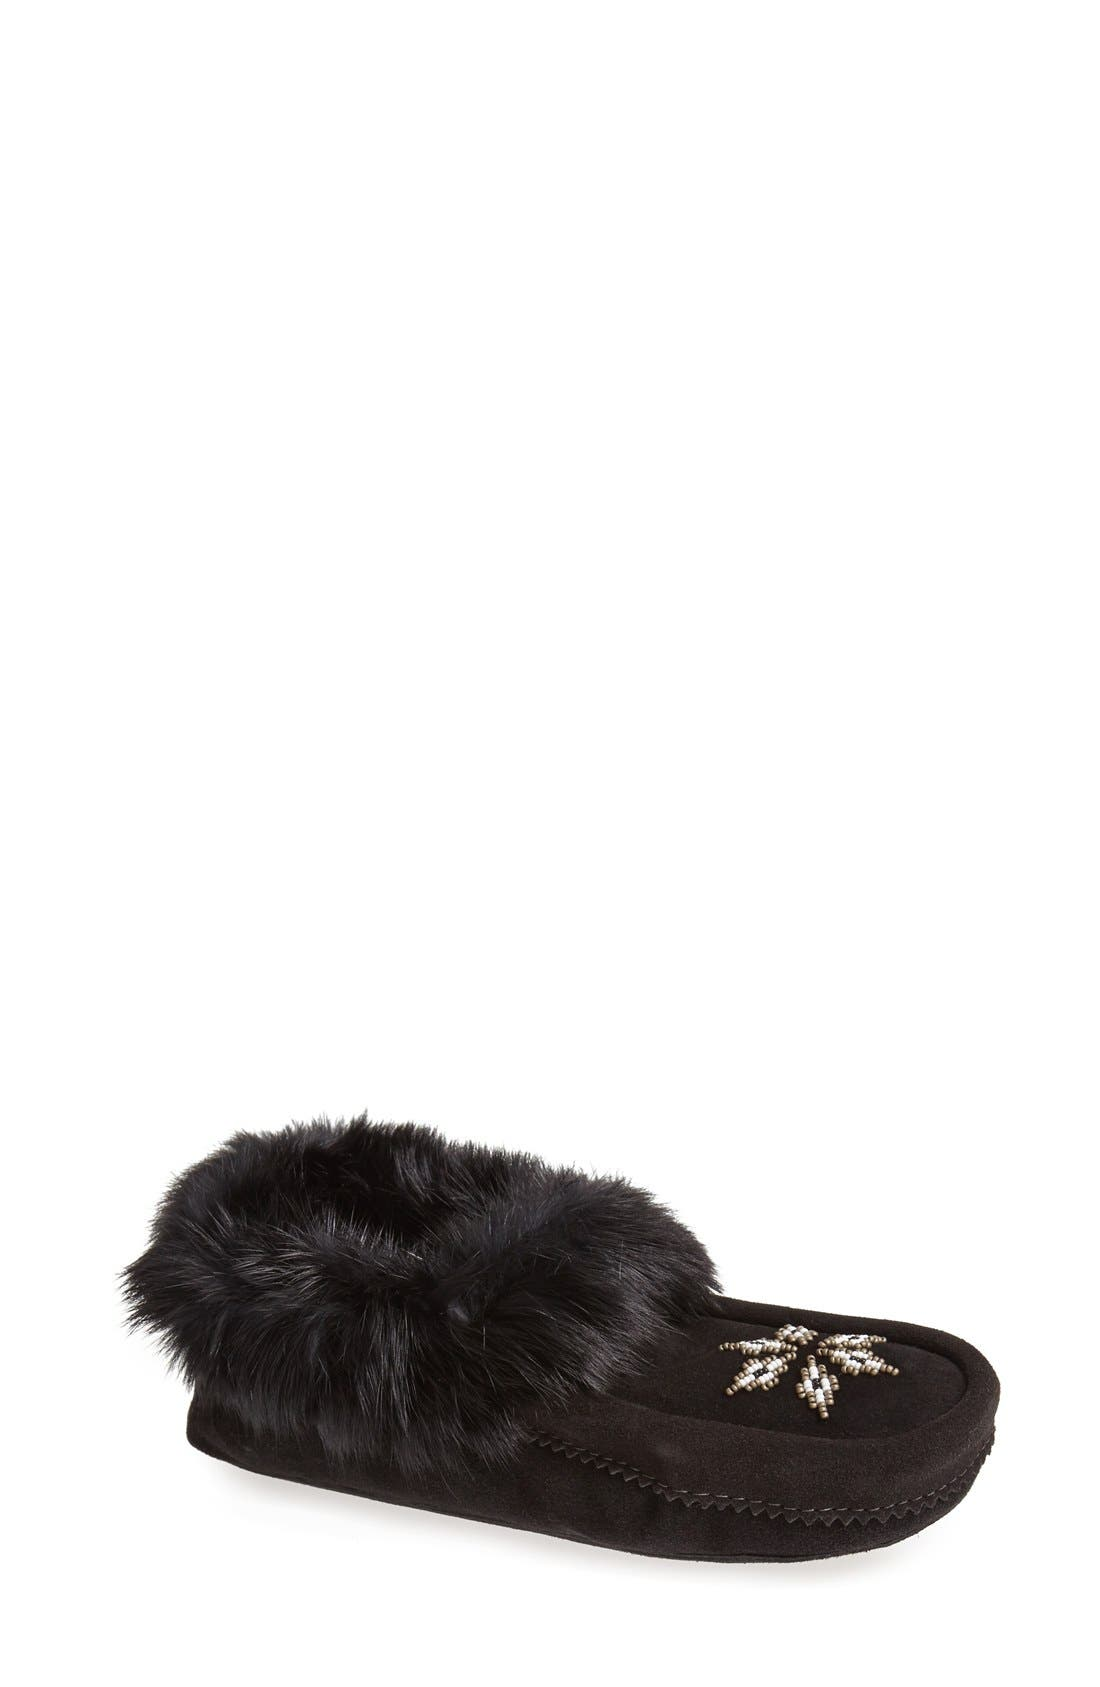 MANITOBAH MUKLUKS 'Kanada' Genuine Rabbit Fur & Suede Moccasin Slipper, Main, color, 001